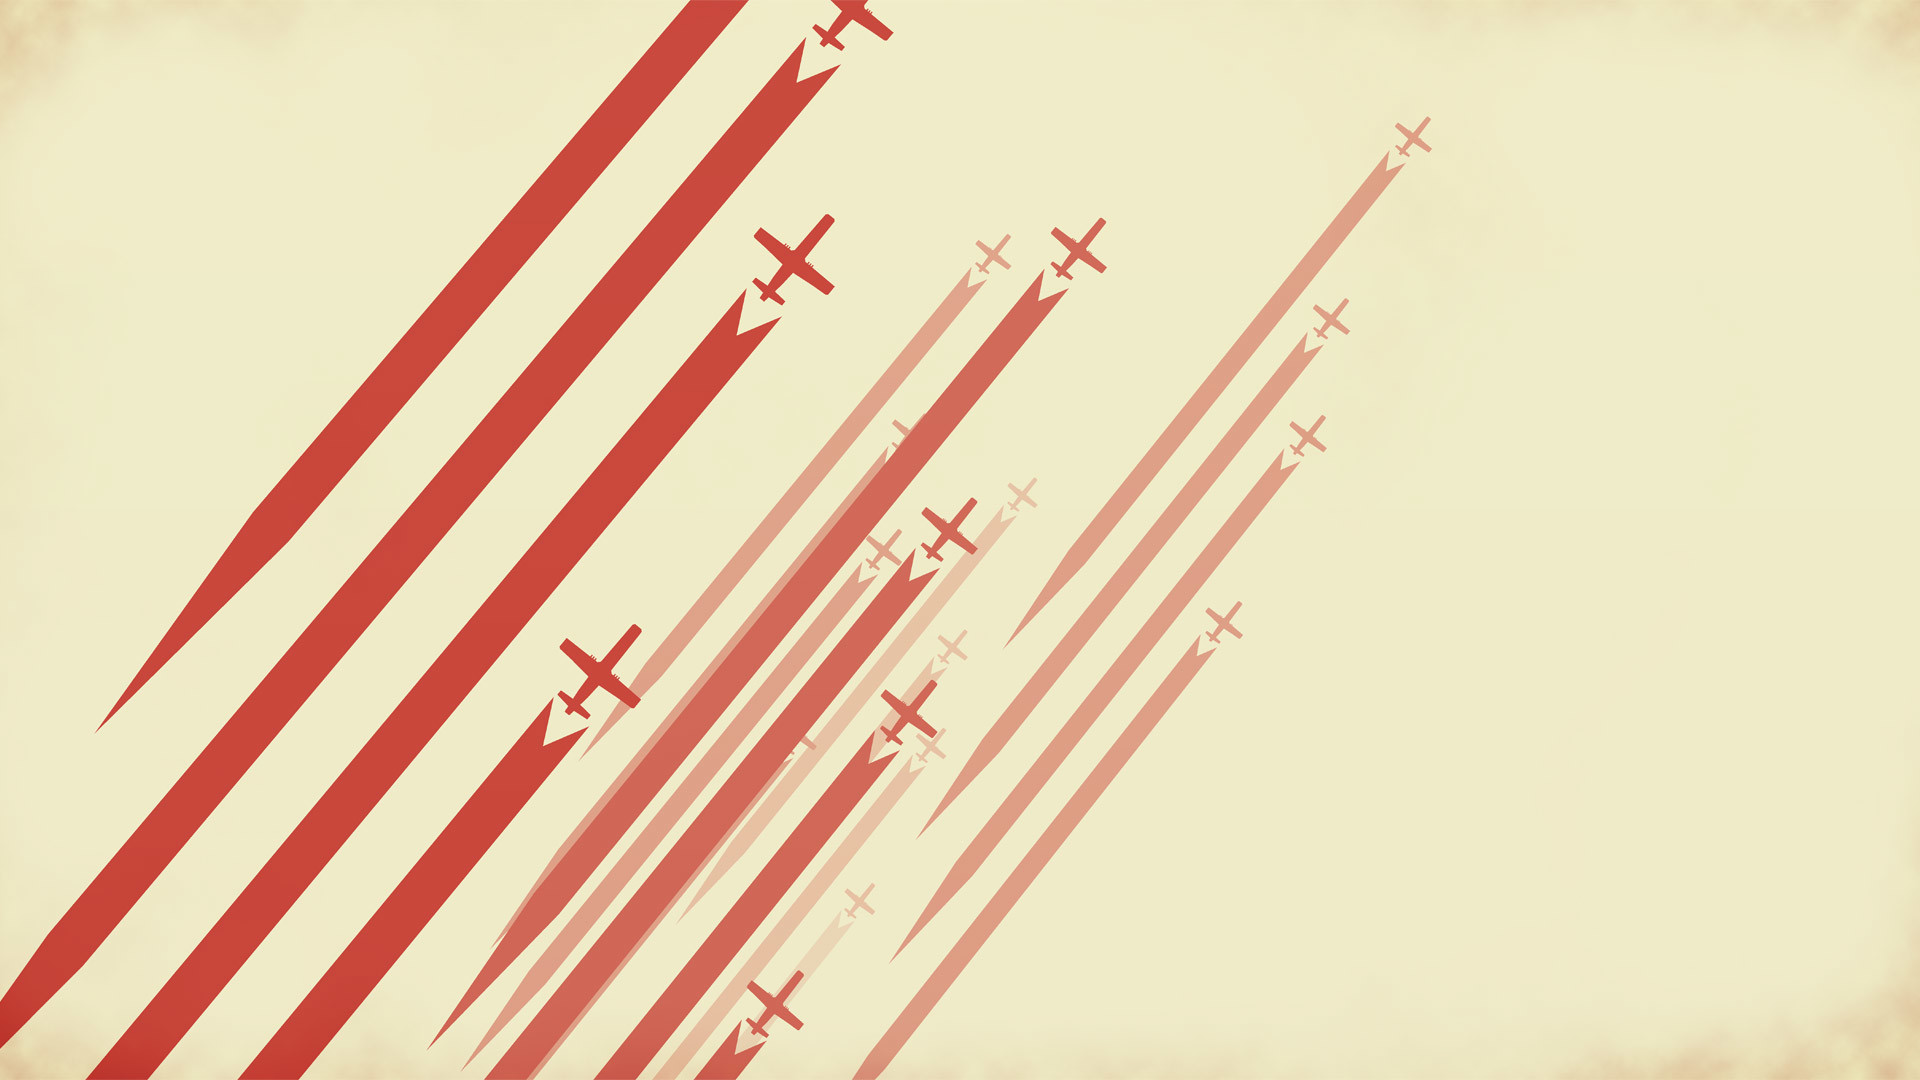 1920x1080 Luftrausers Wallpaper, PC Game Wallpapers